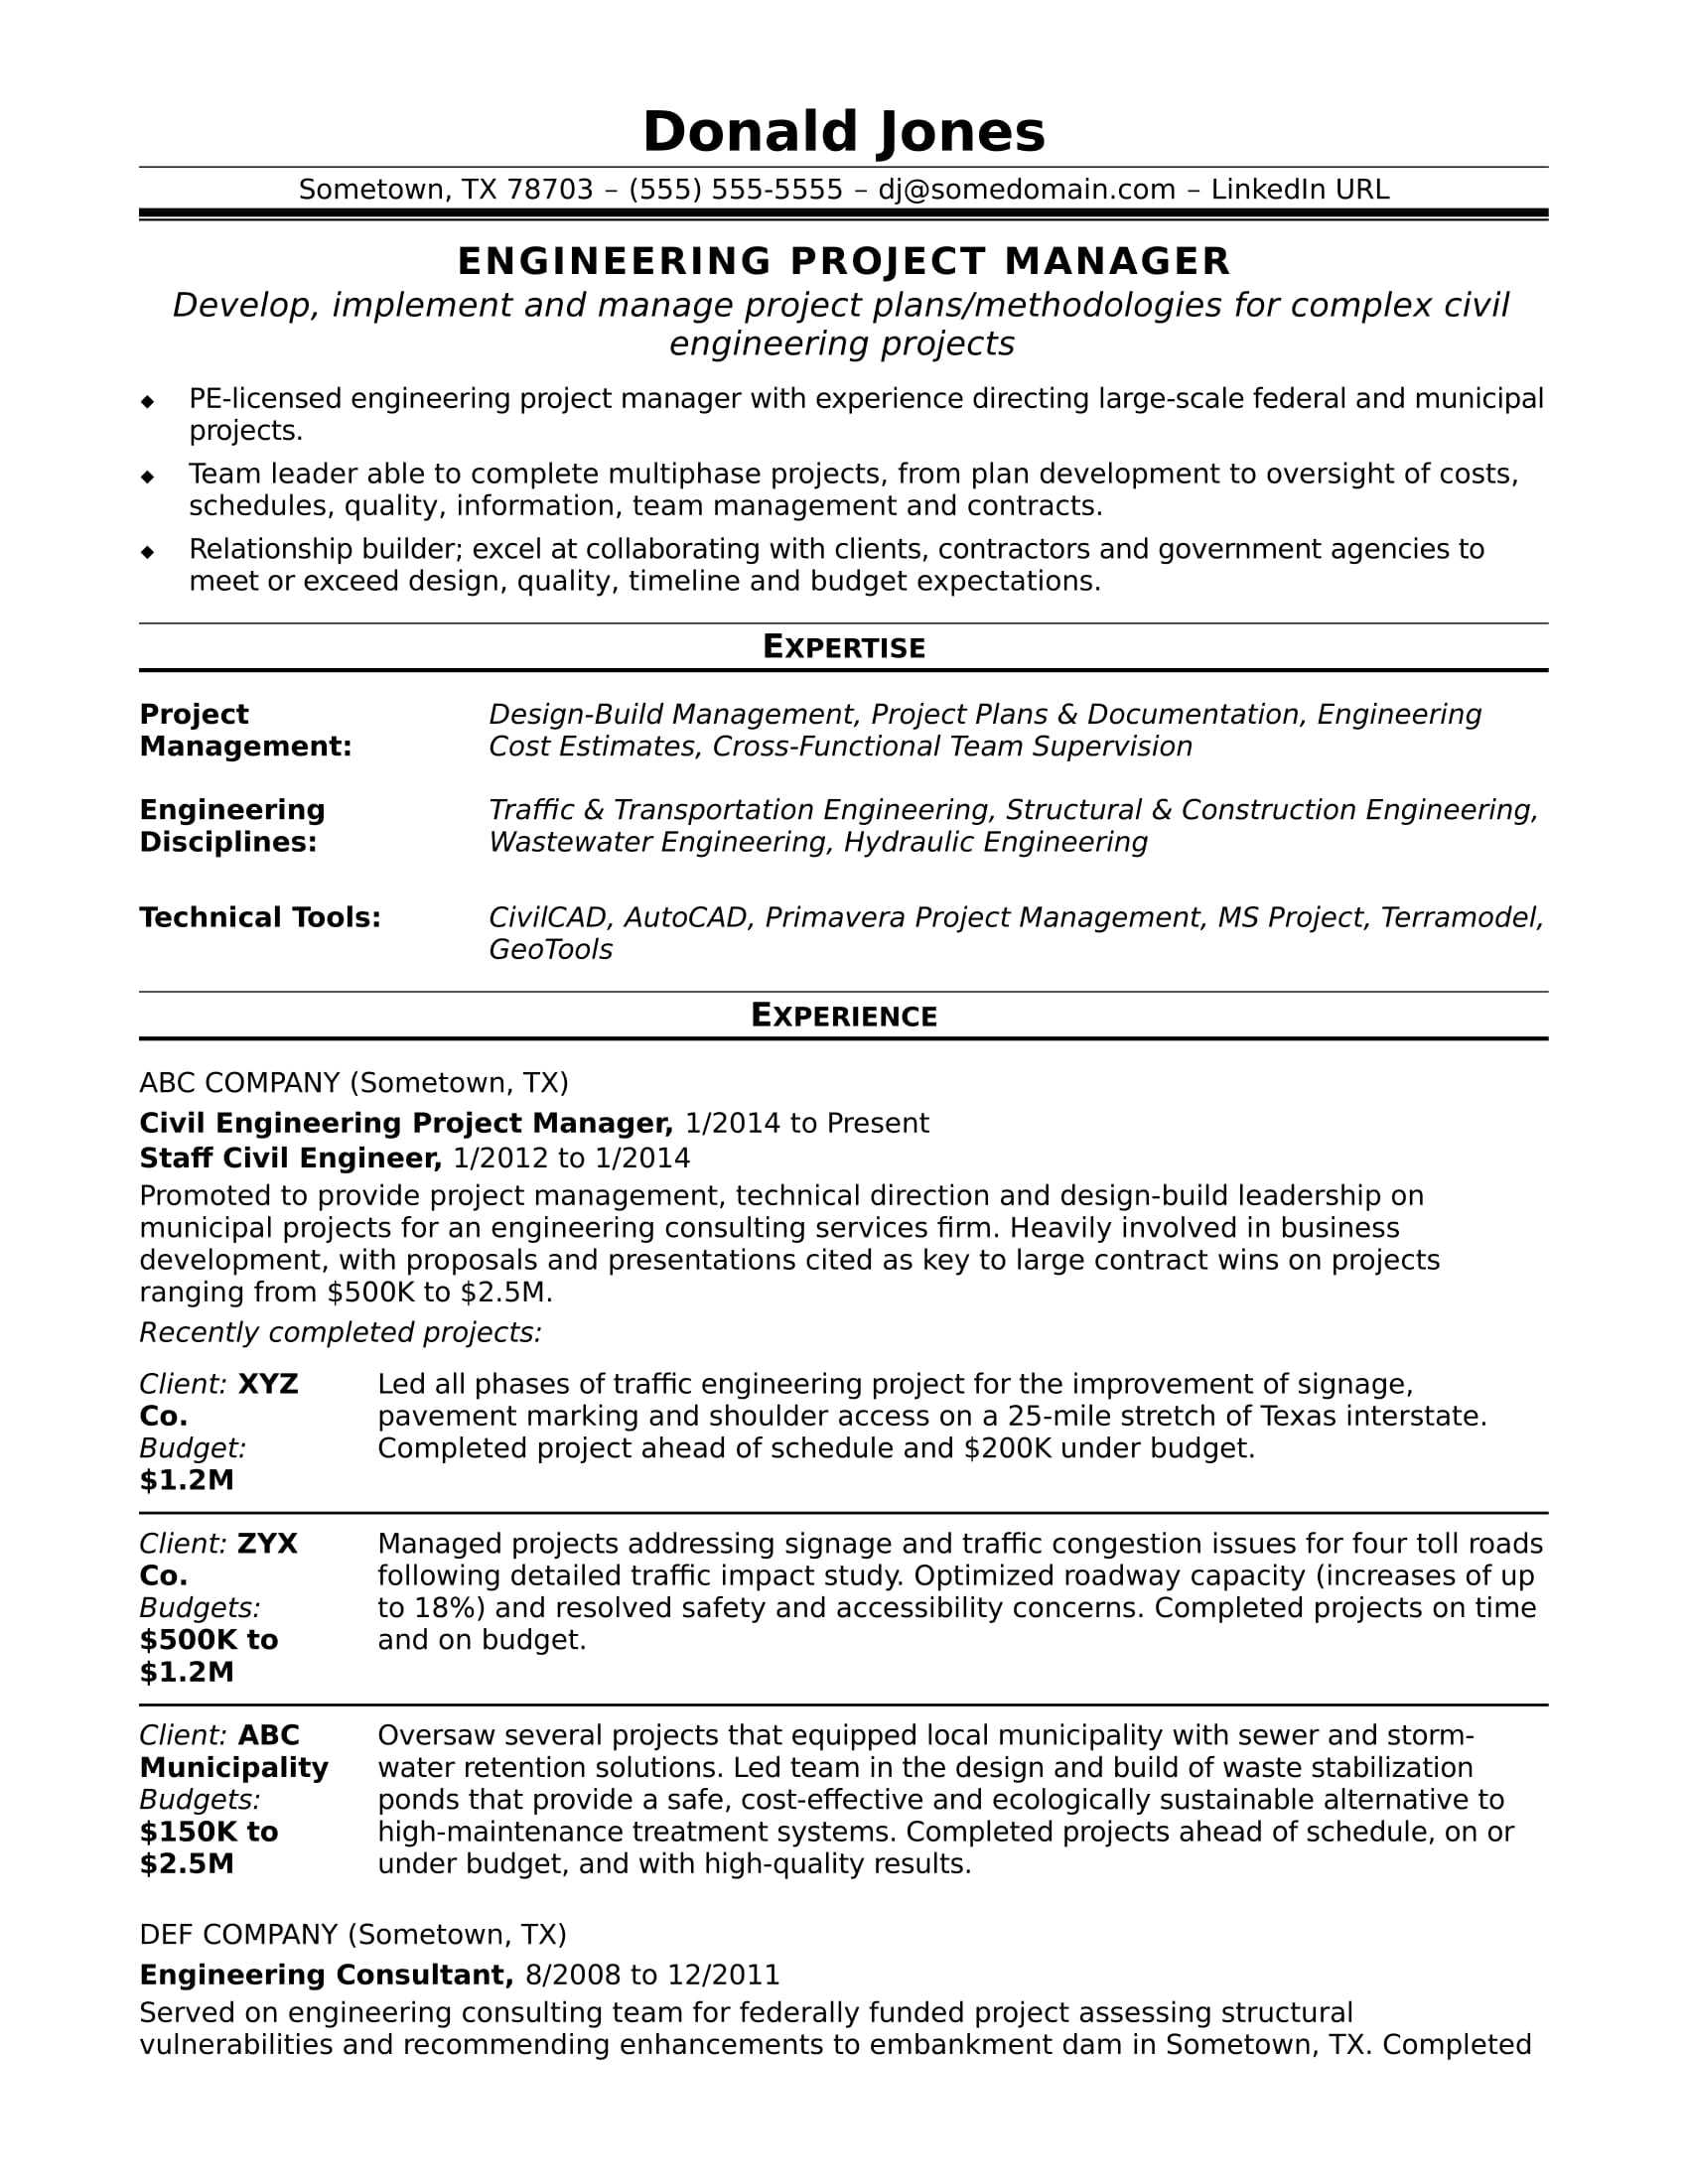 sample resume for a midlevel engineering project manager monster com